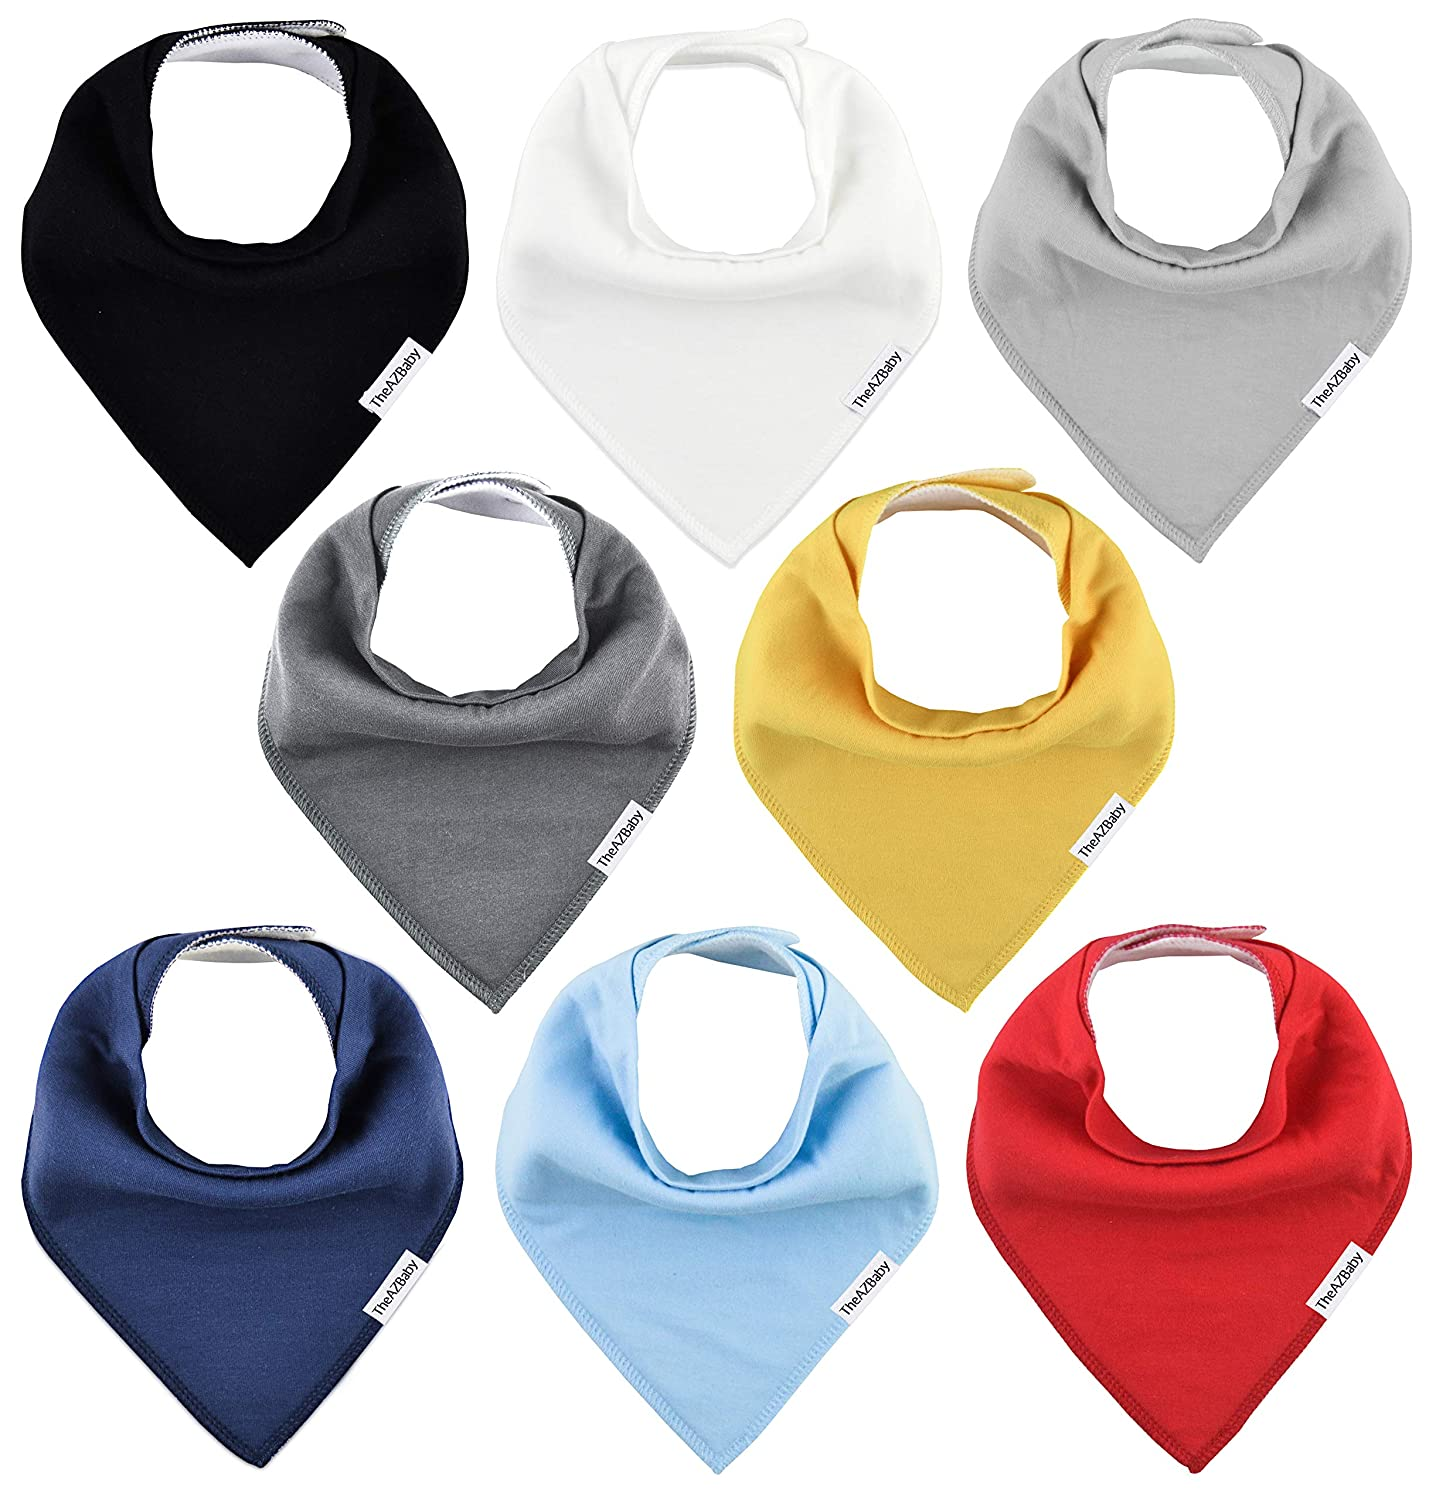 TheAZBaby Baby Bandana Drool Bibs for Boys and Girls, Organic, Plain colors, Unisex 8 Pack Baby Shower Gift Set for Teething and Drooling, Soft Absorbent and Hypoallergenic ( Solid Colors )